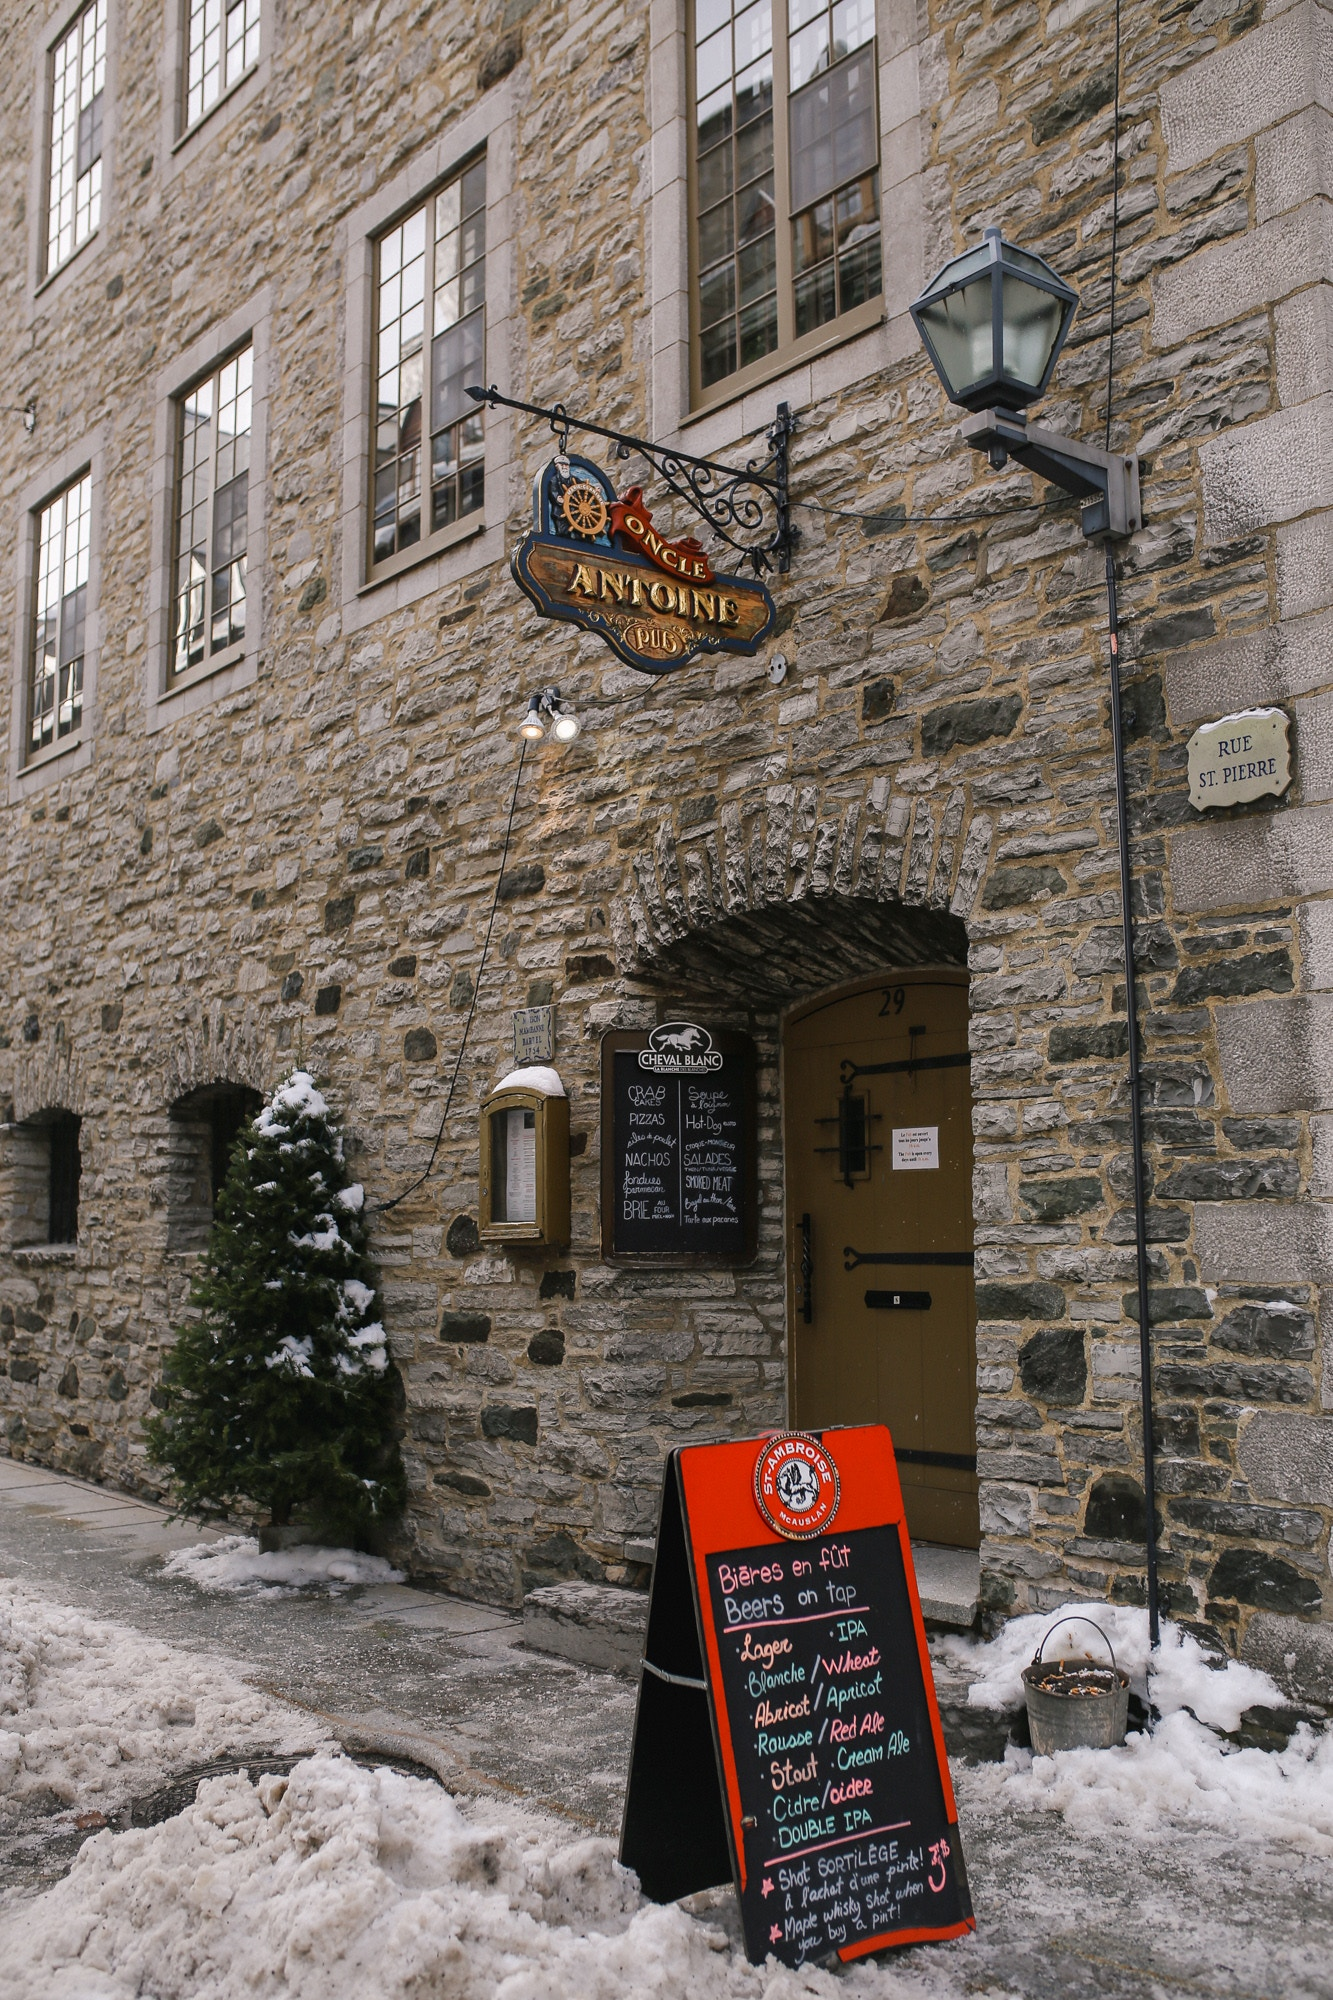 Top 10 Things to do in Quebec City in a weekend in winter: have a couple pints at l'Oncle Antoine, one of Canada's oldest bars dating back to 1754!